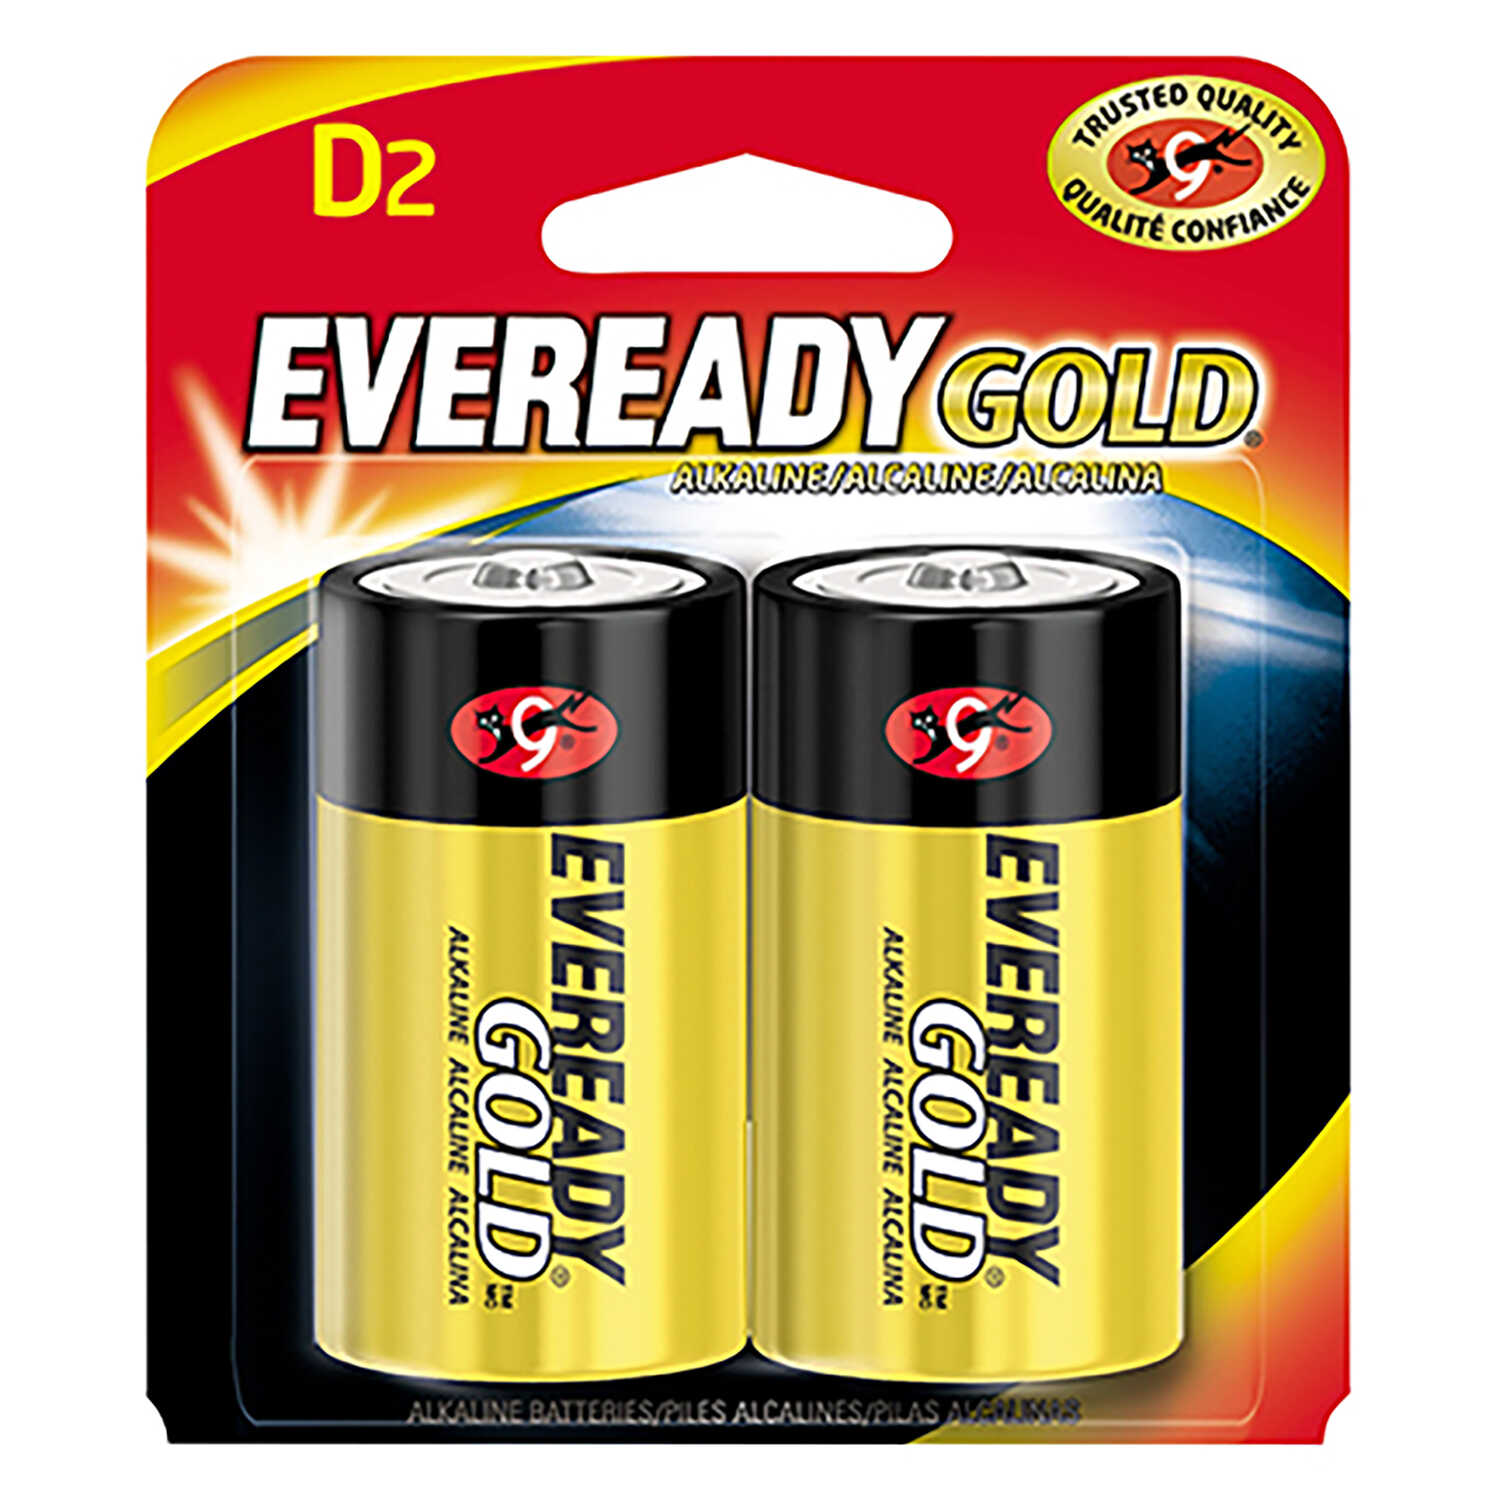 Eveready  Gold  D  Alkaline  Batteries  2 pk Carded  1.5 volts